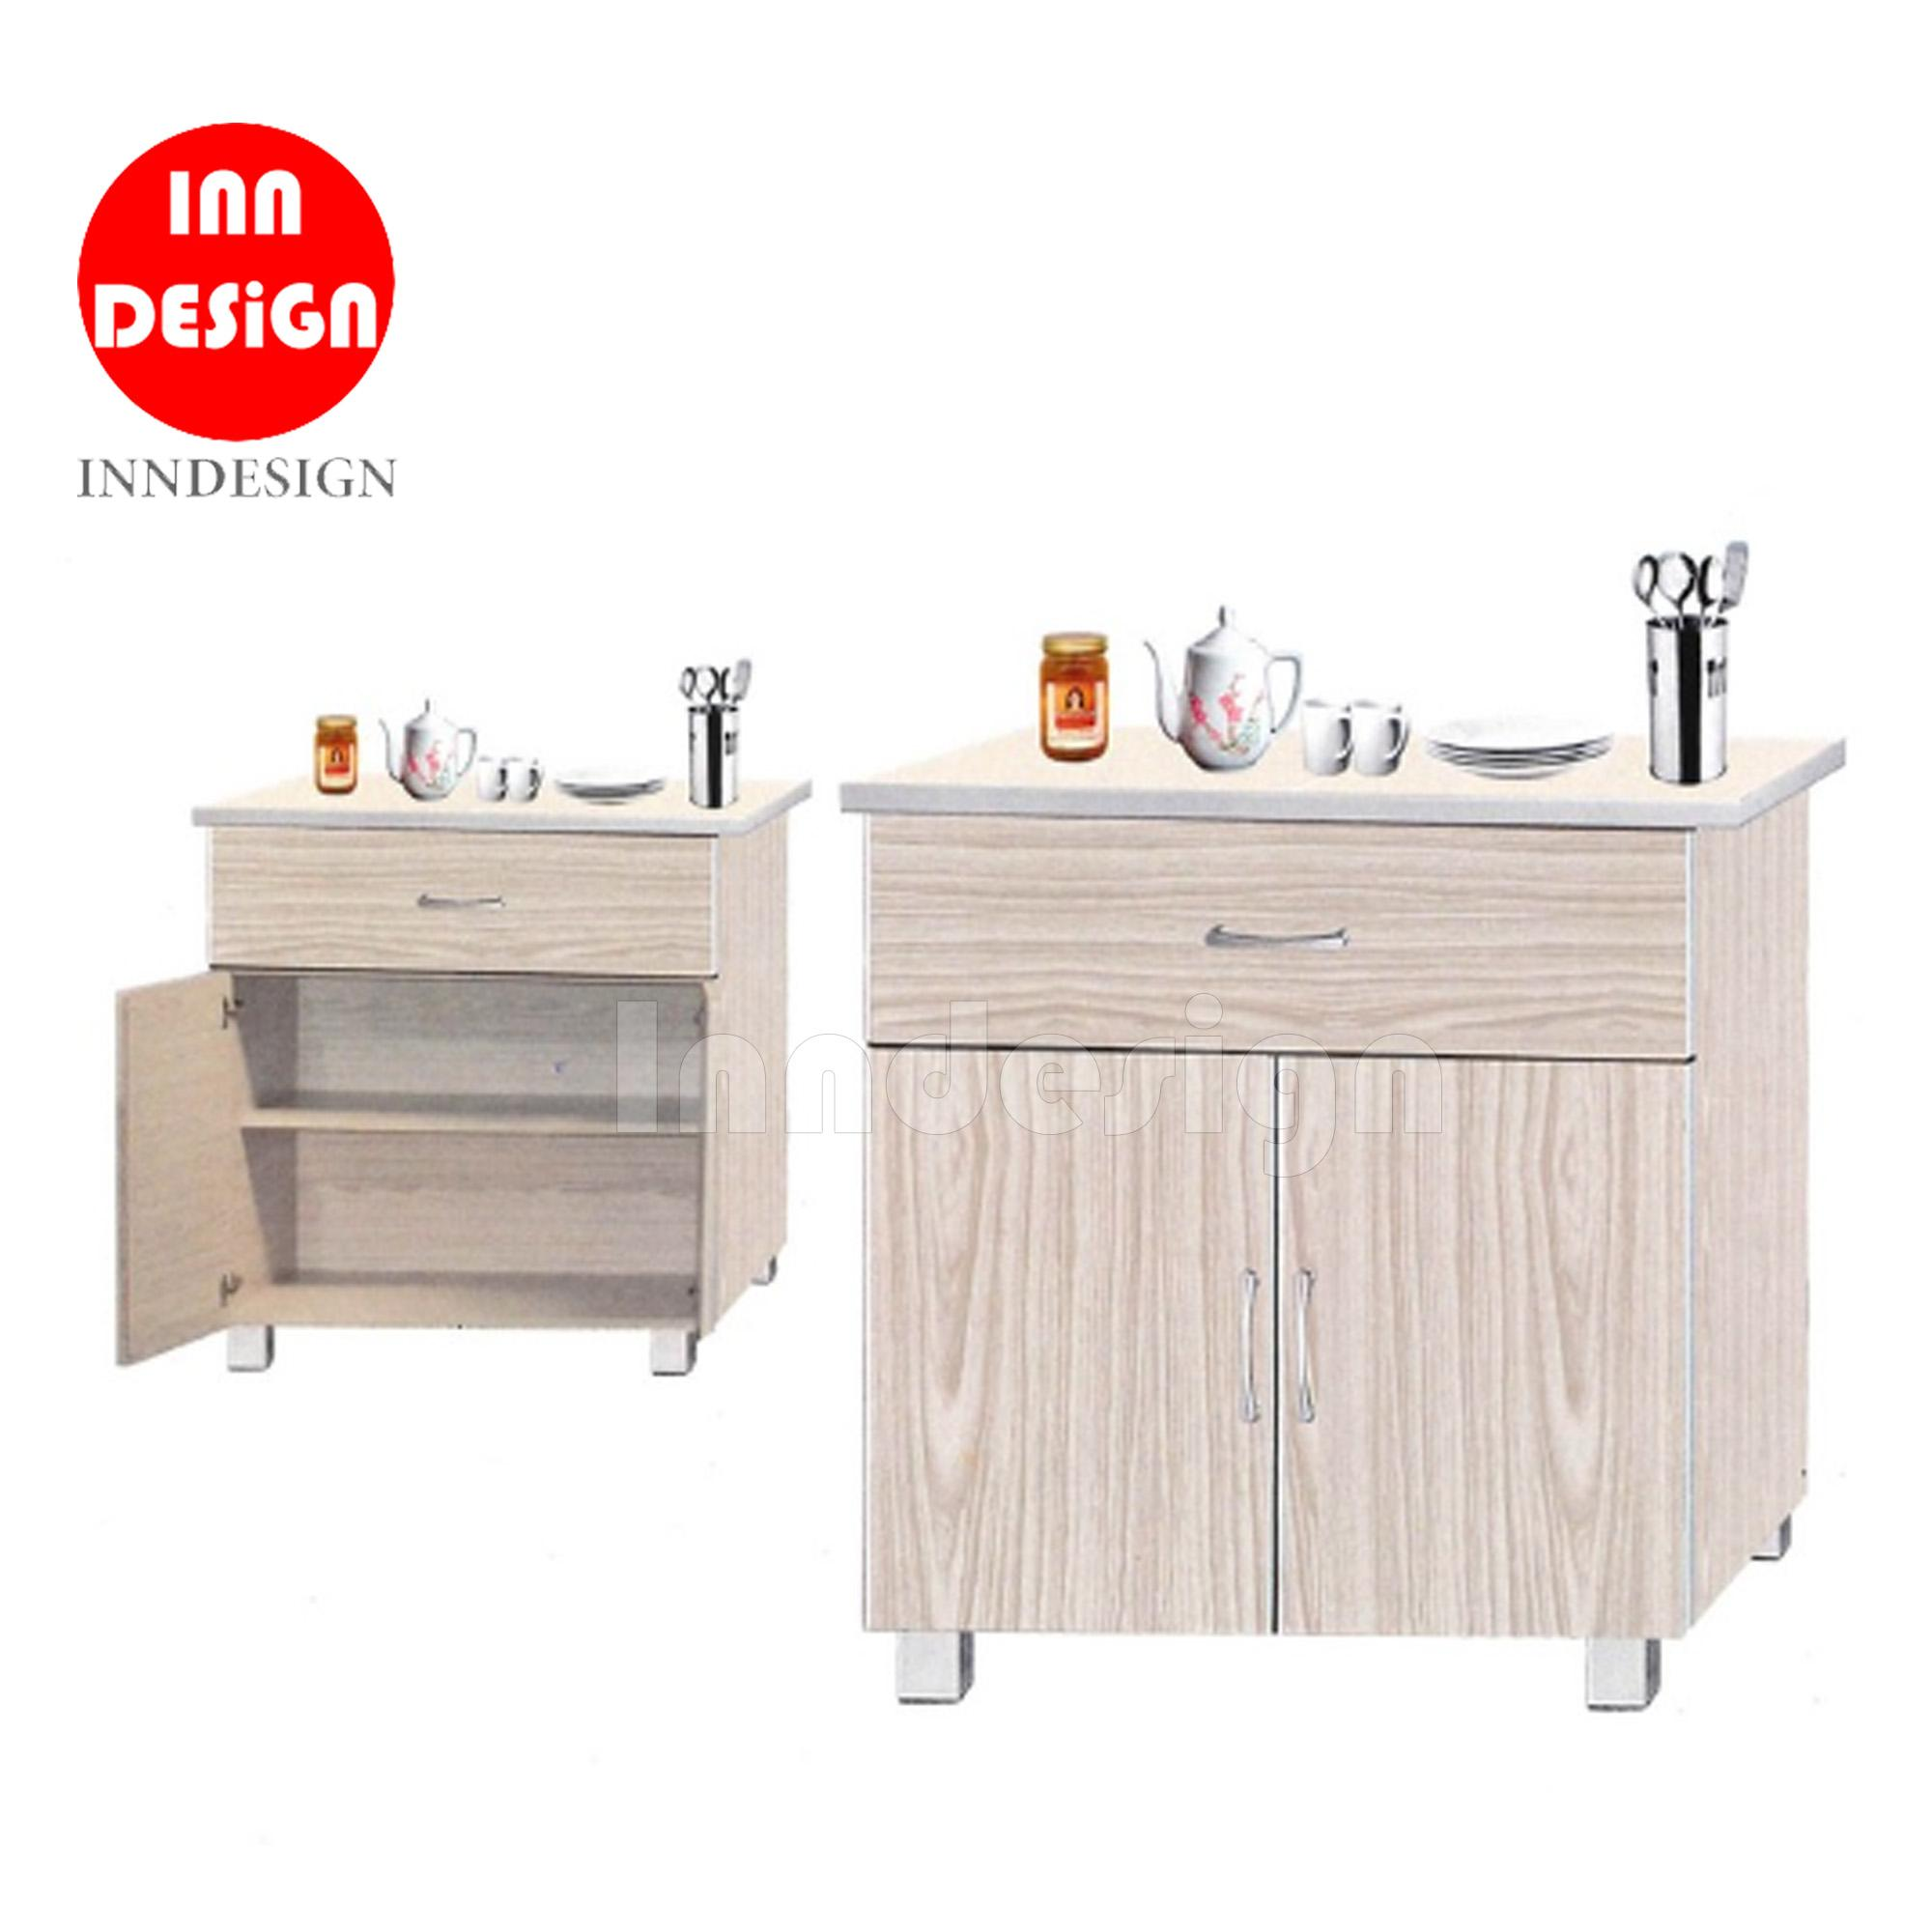 Don 2 Doors Stove Kitchen Cabinet (with Ceramic Tiles Top) By Inndesign.